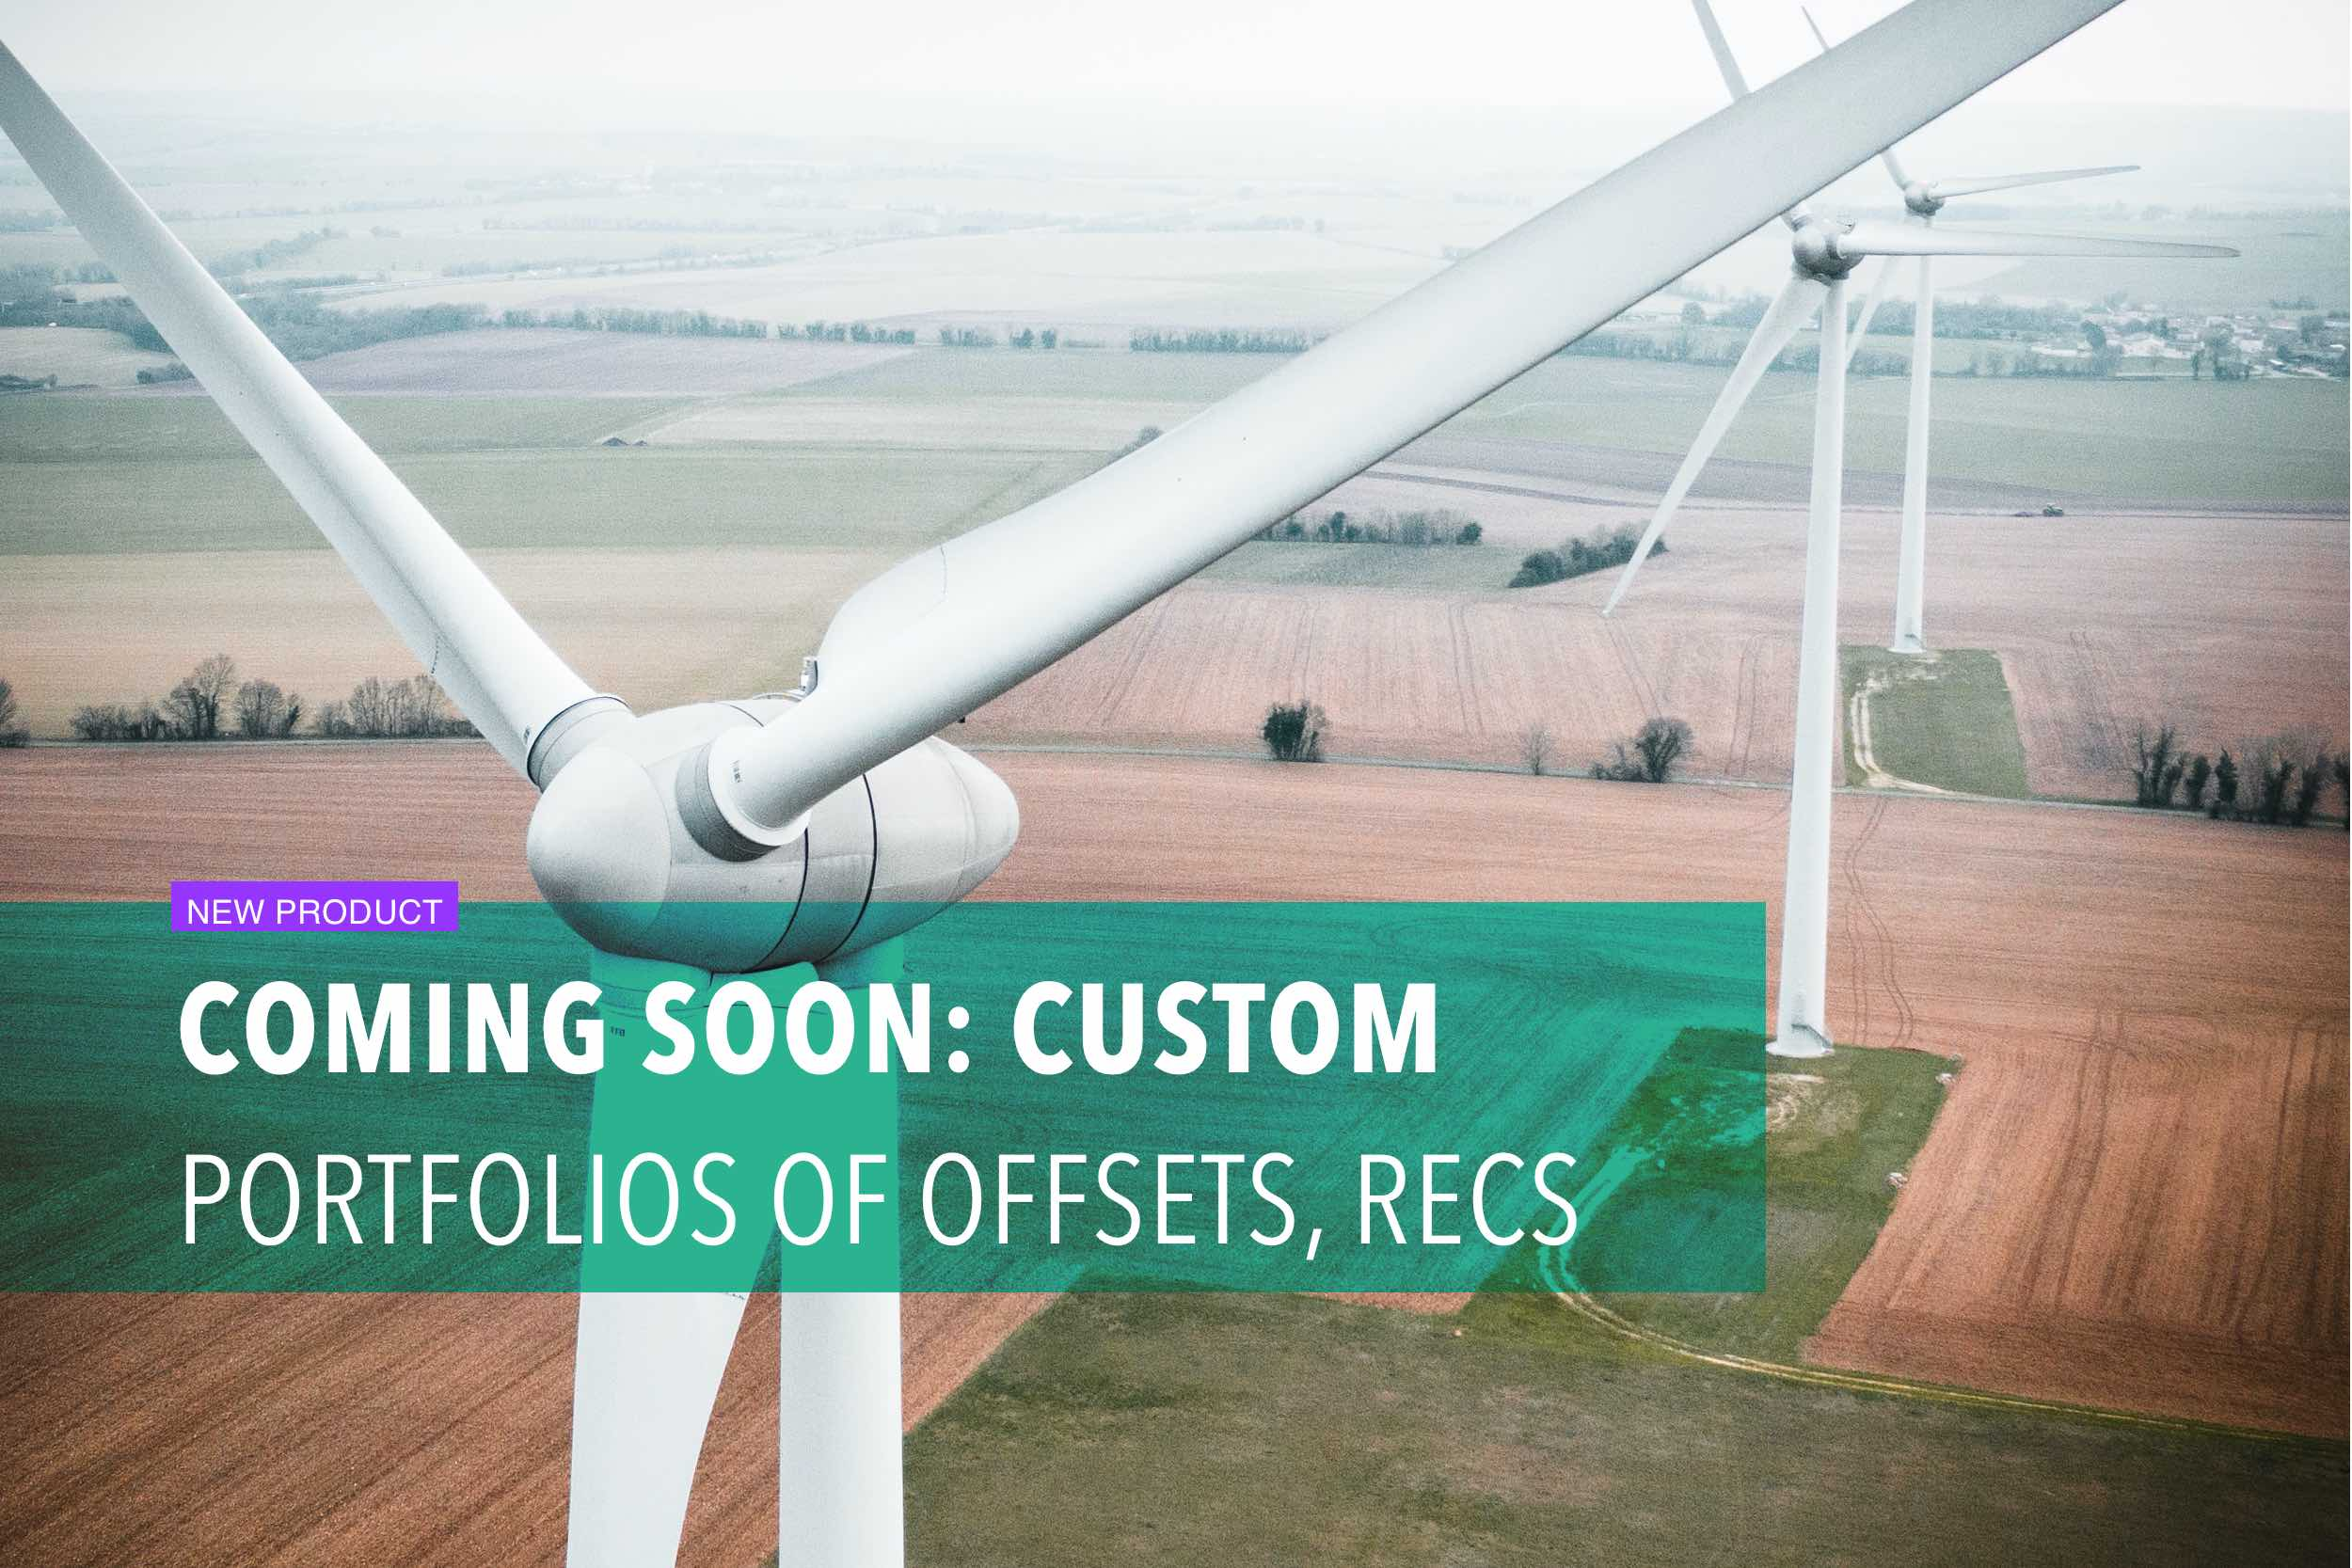 Coming soon: custom portfolios of offsets, RECs